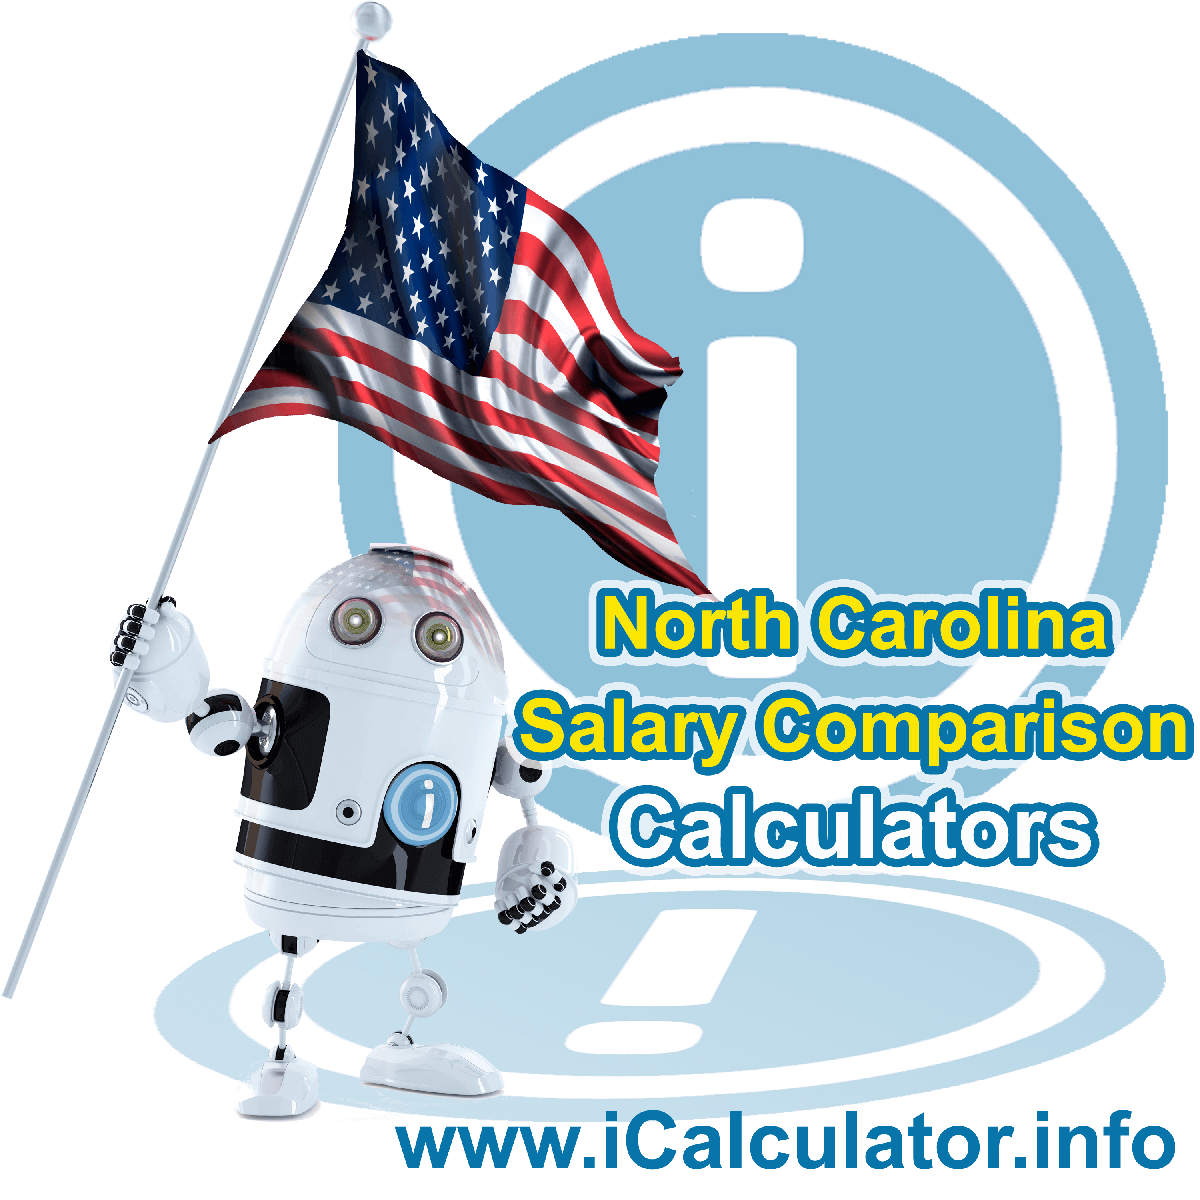 North Carolina Salary Comparison Calculator 2020 | iCalculator | The North Carolina Salary Comparison Calculator allows you to quickly calculate and compare upto 6 salaries in North Carolina or between other states for the 2020 tax year and historical tax years. Its an excellent tool for jobseekers, pay raise comparison and comparison of salaries between different US States